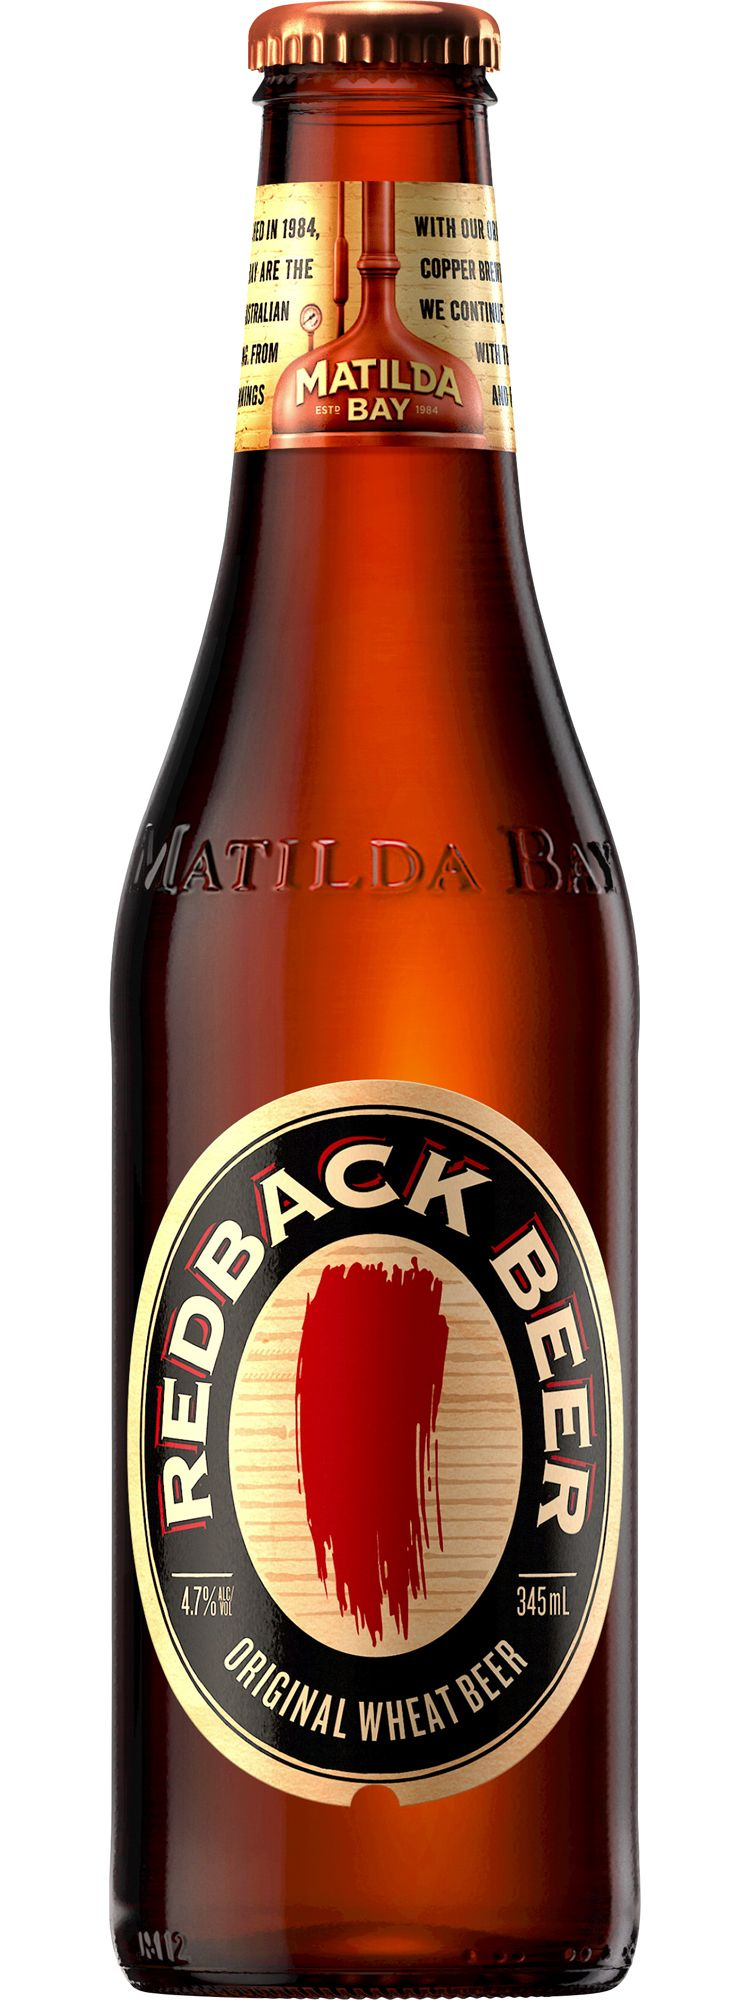 14+ Buy craft beer online australia info